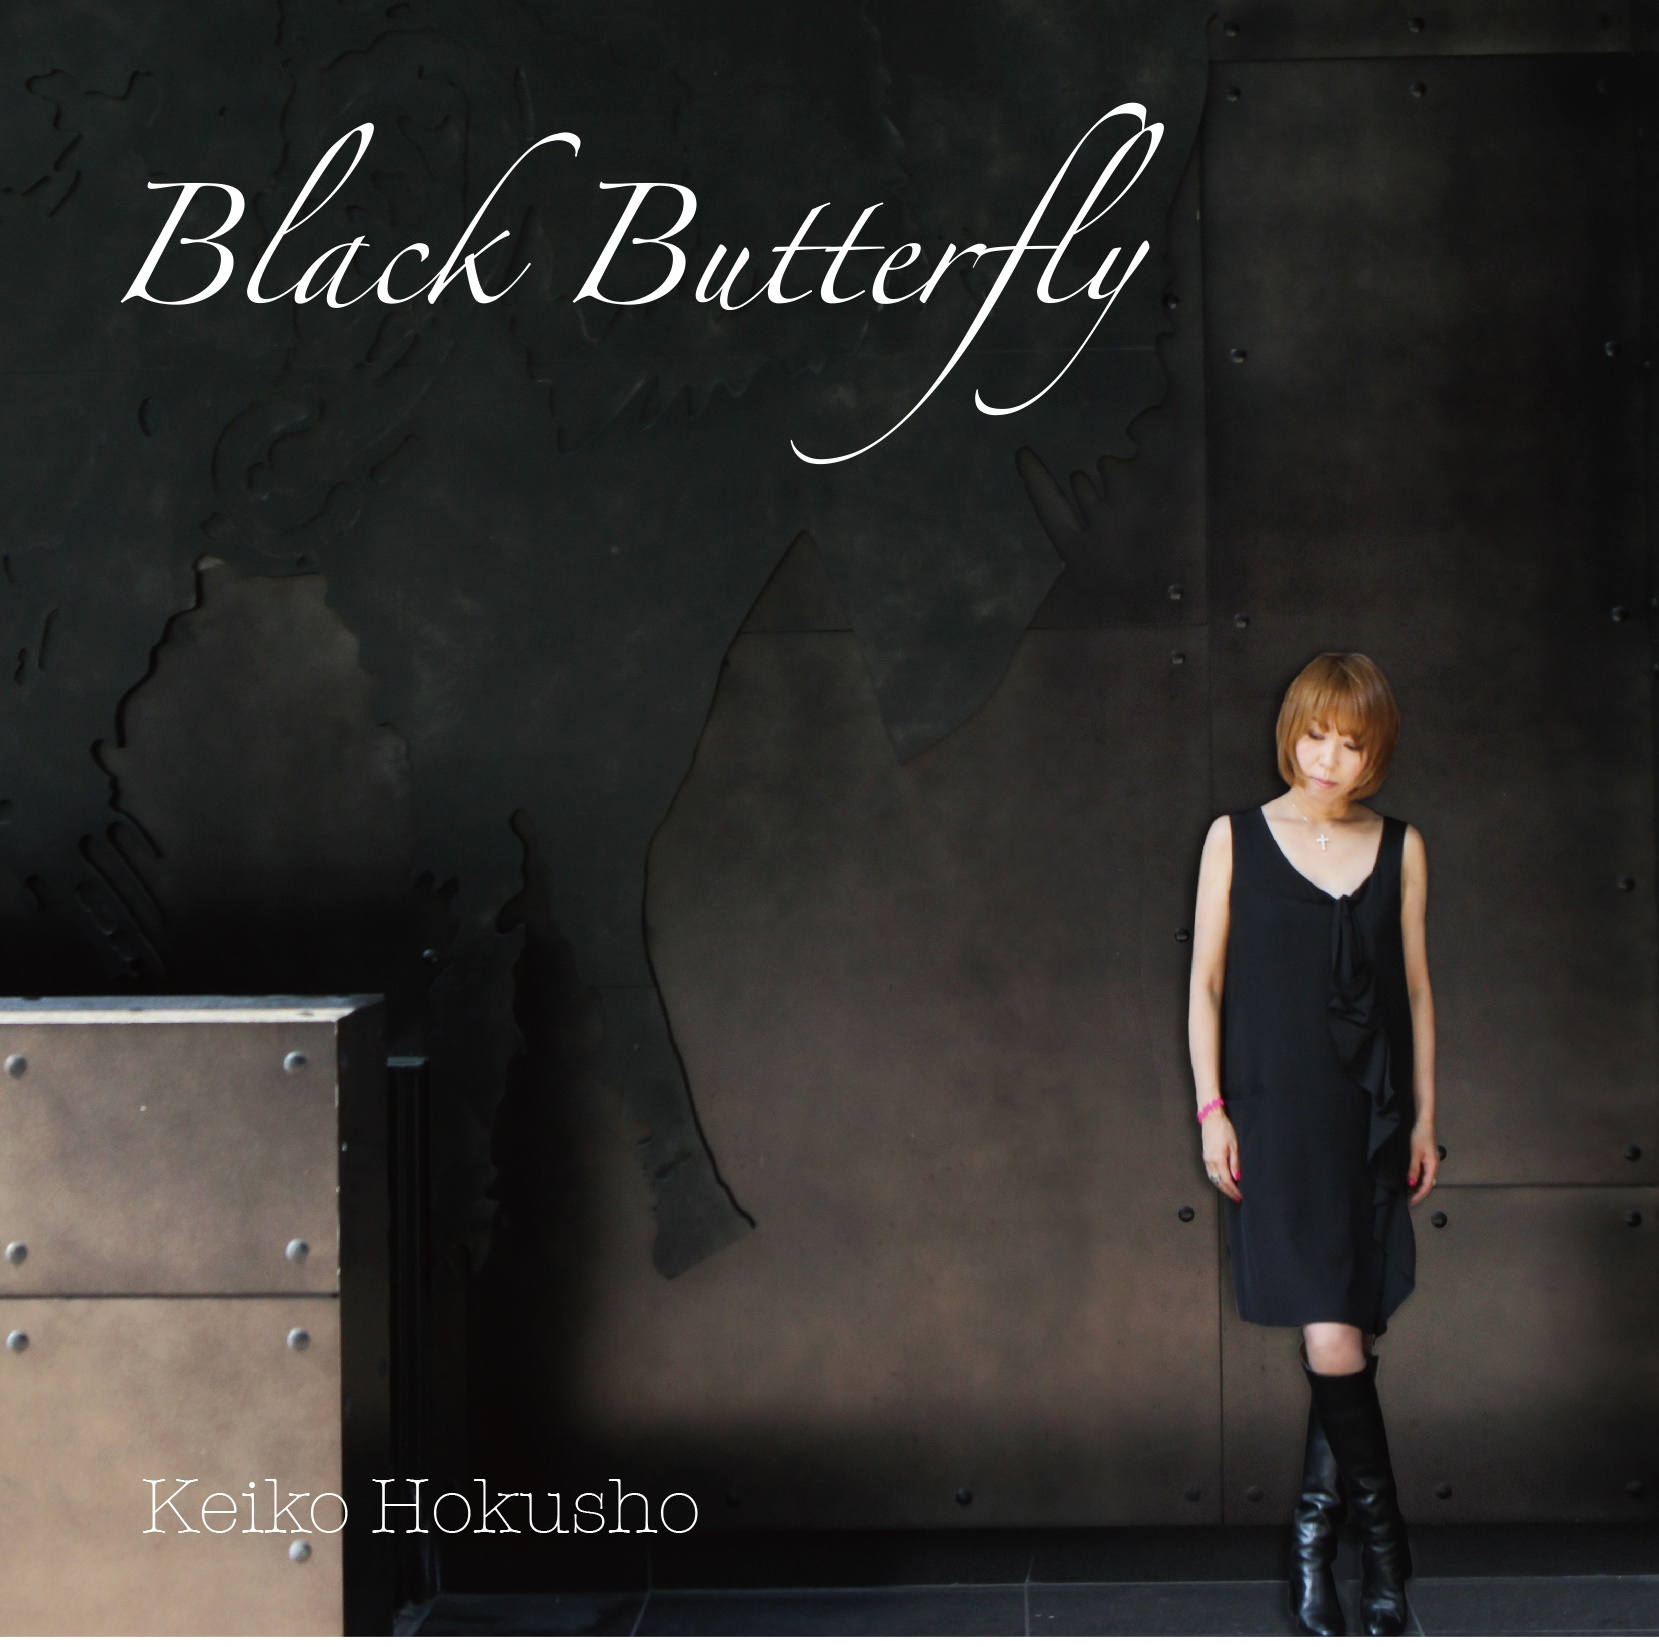 blackbutterfly-jacket.jpg